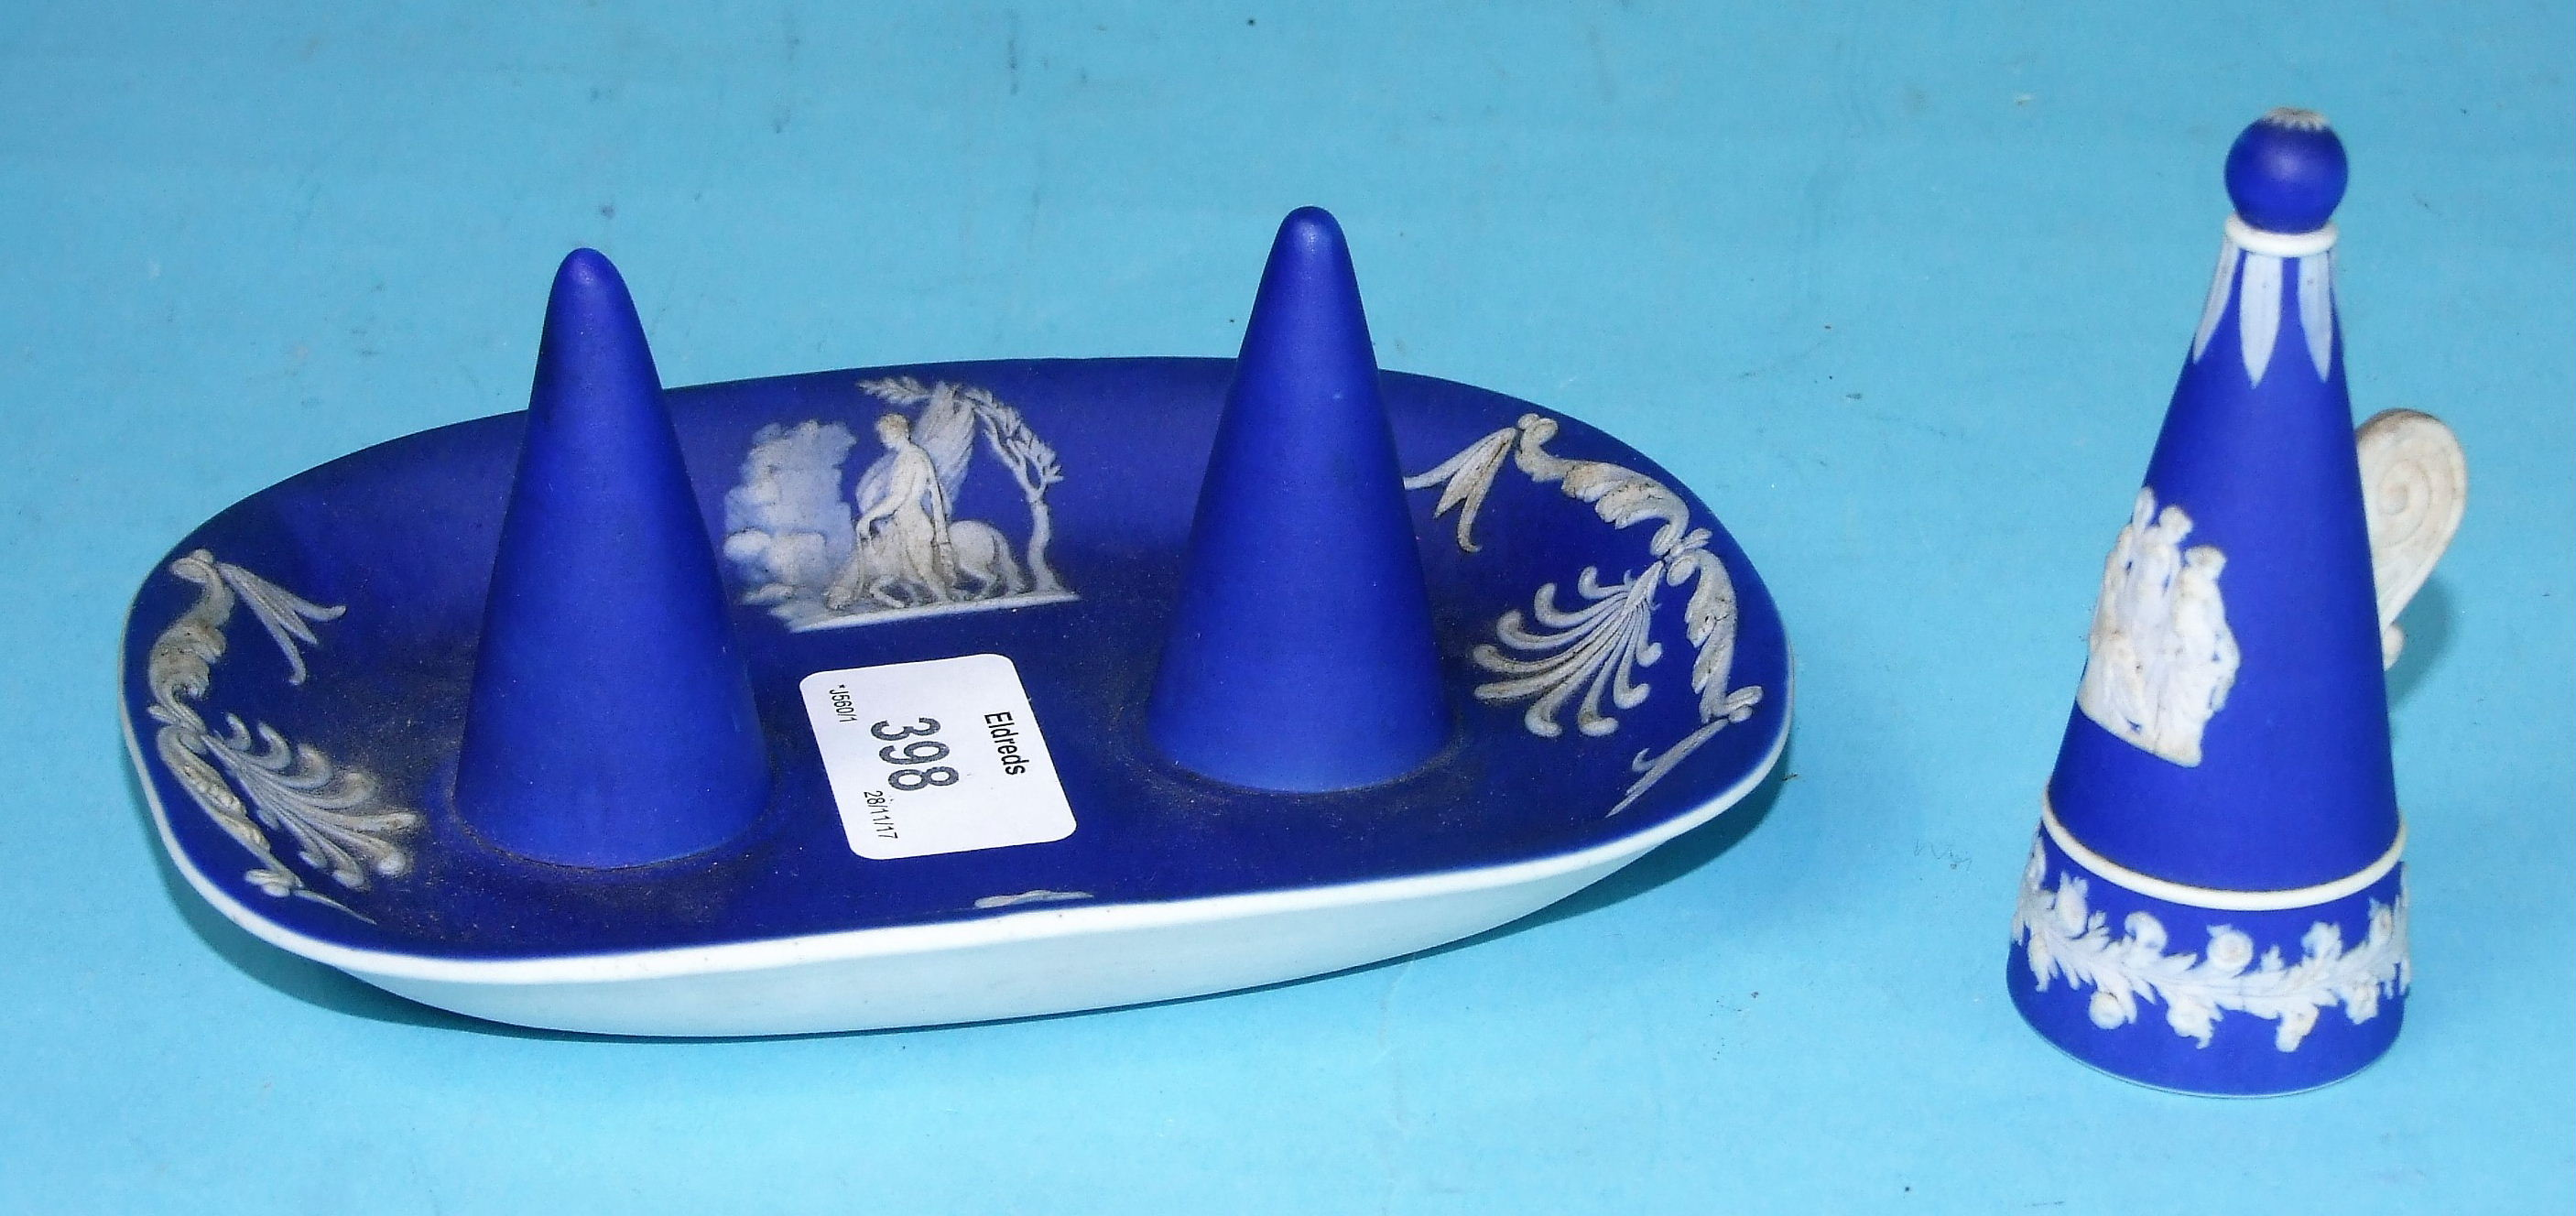 Lot 221 - A 19th century blue and white jasperware double candle snuffer depicting classical figures, only one